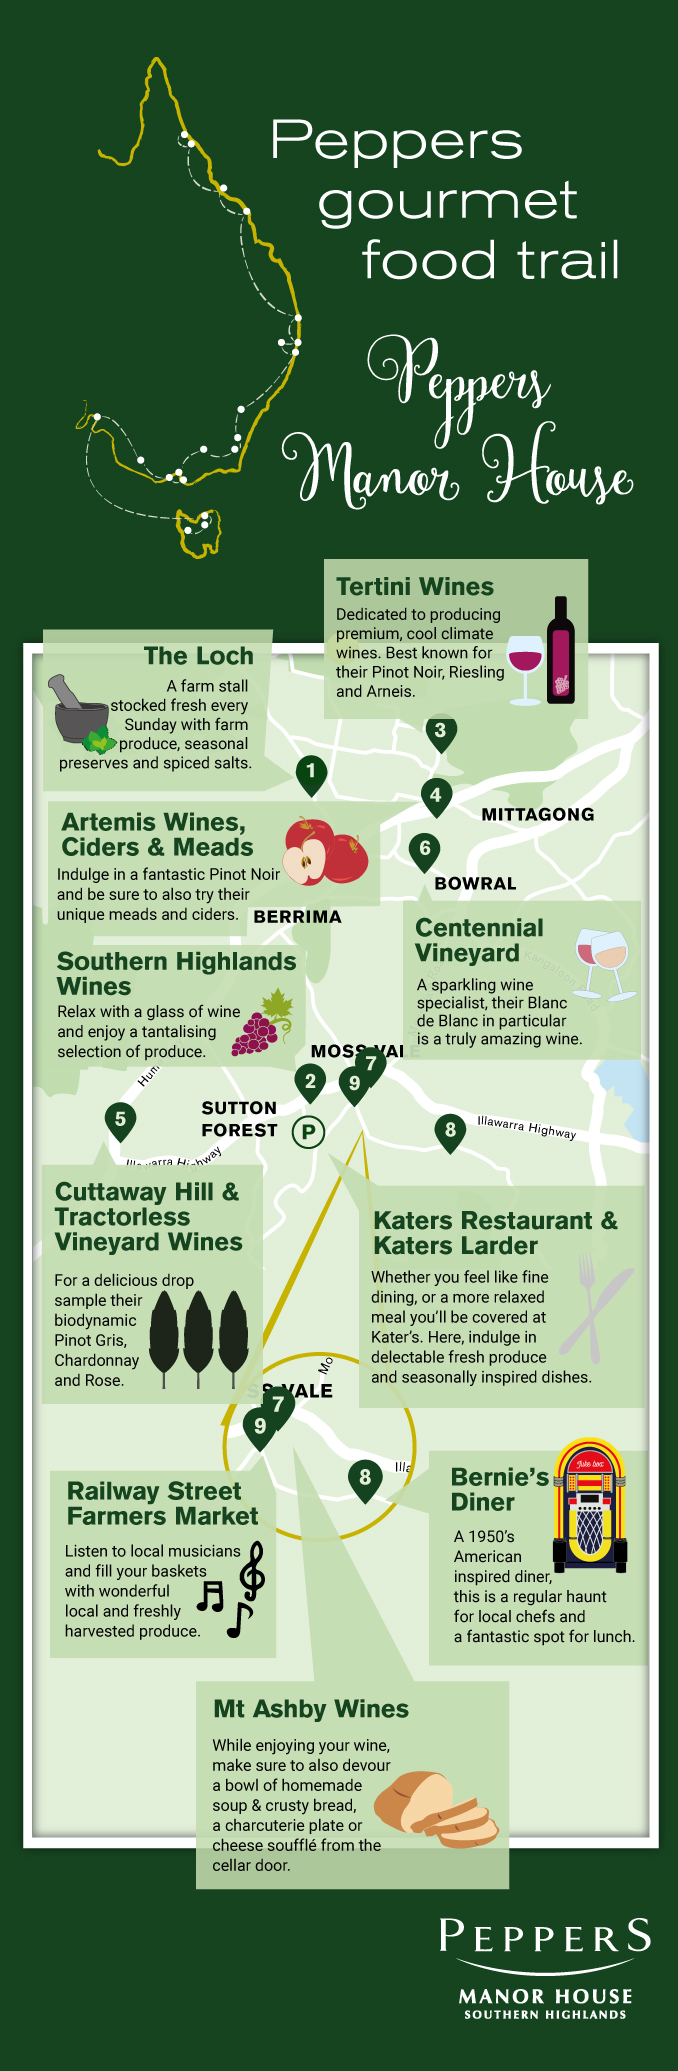 Southern Highlands Wine Tours